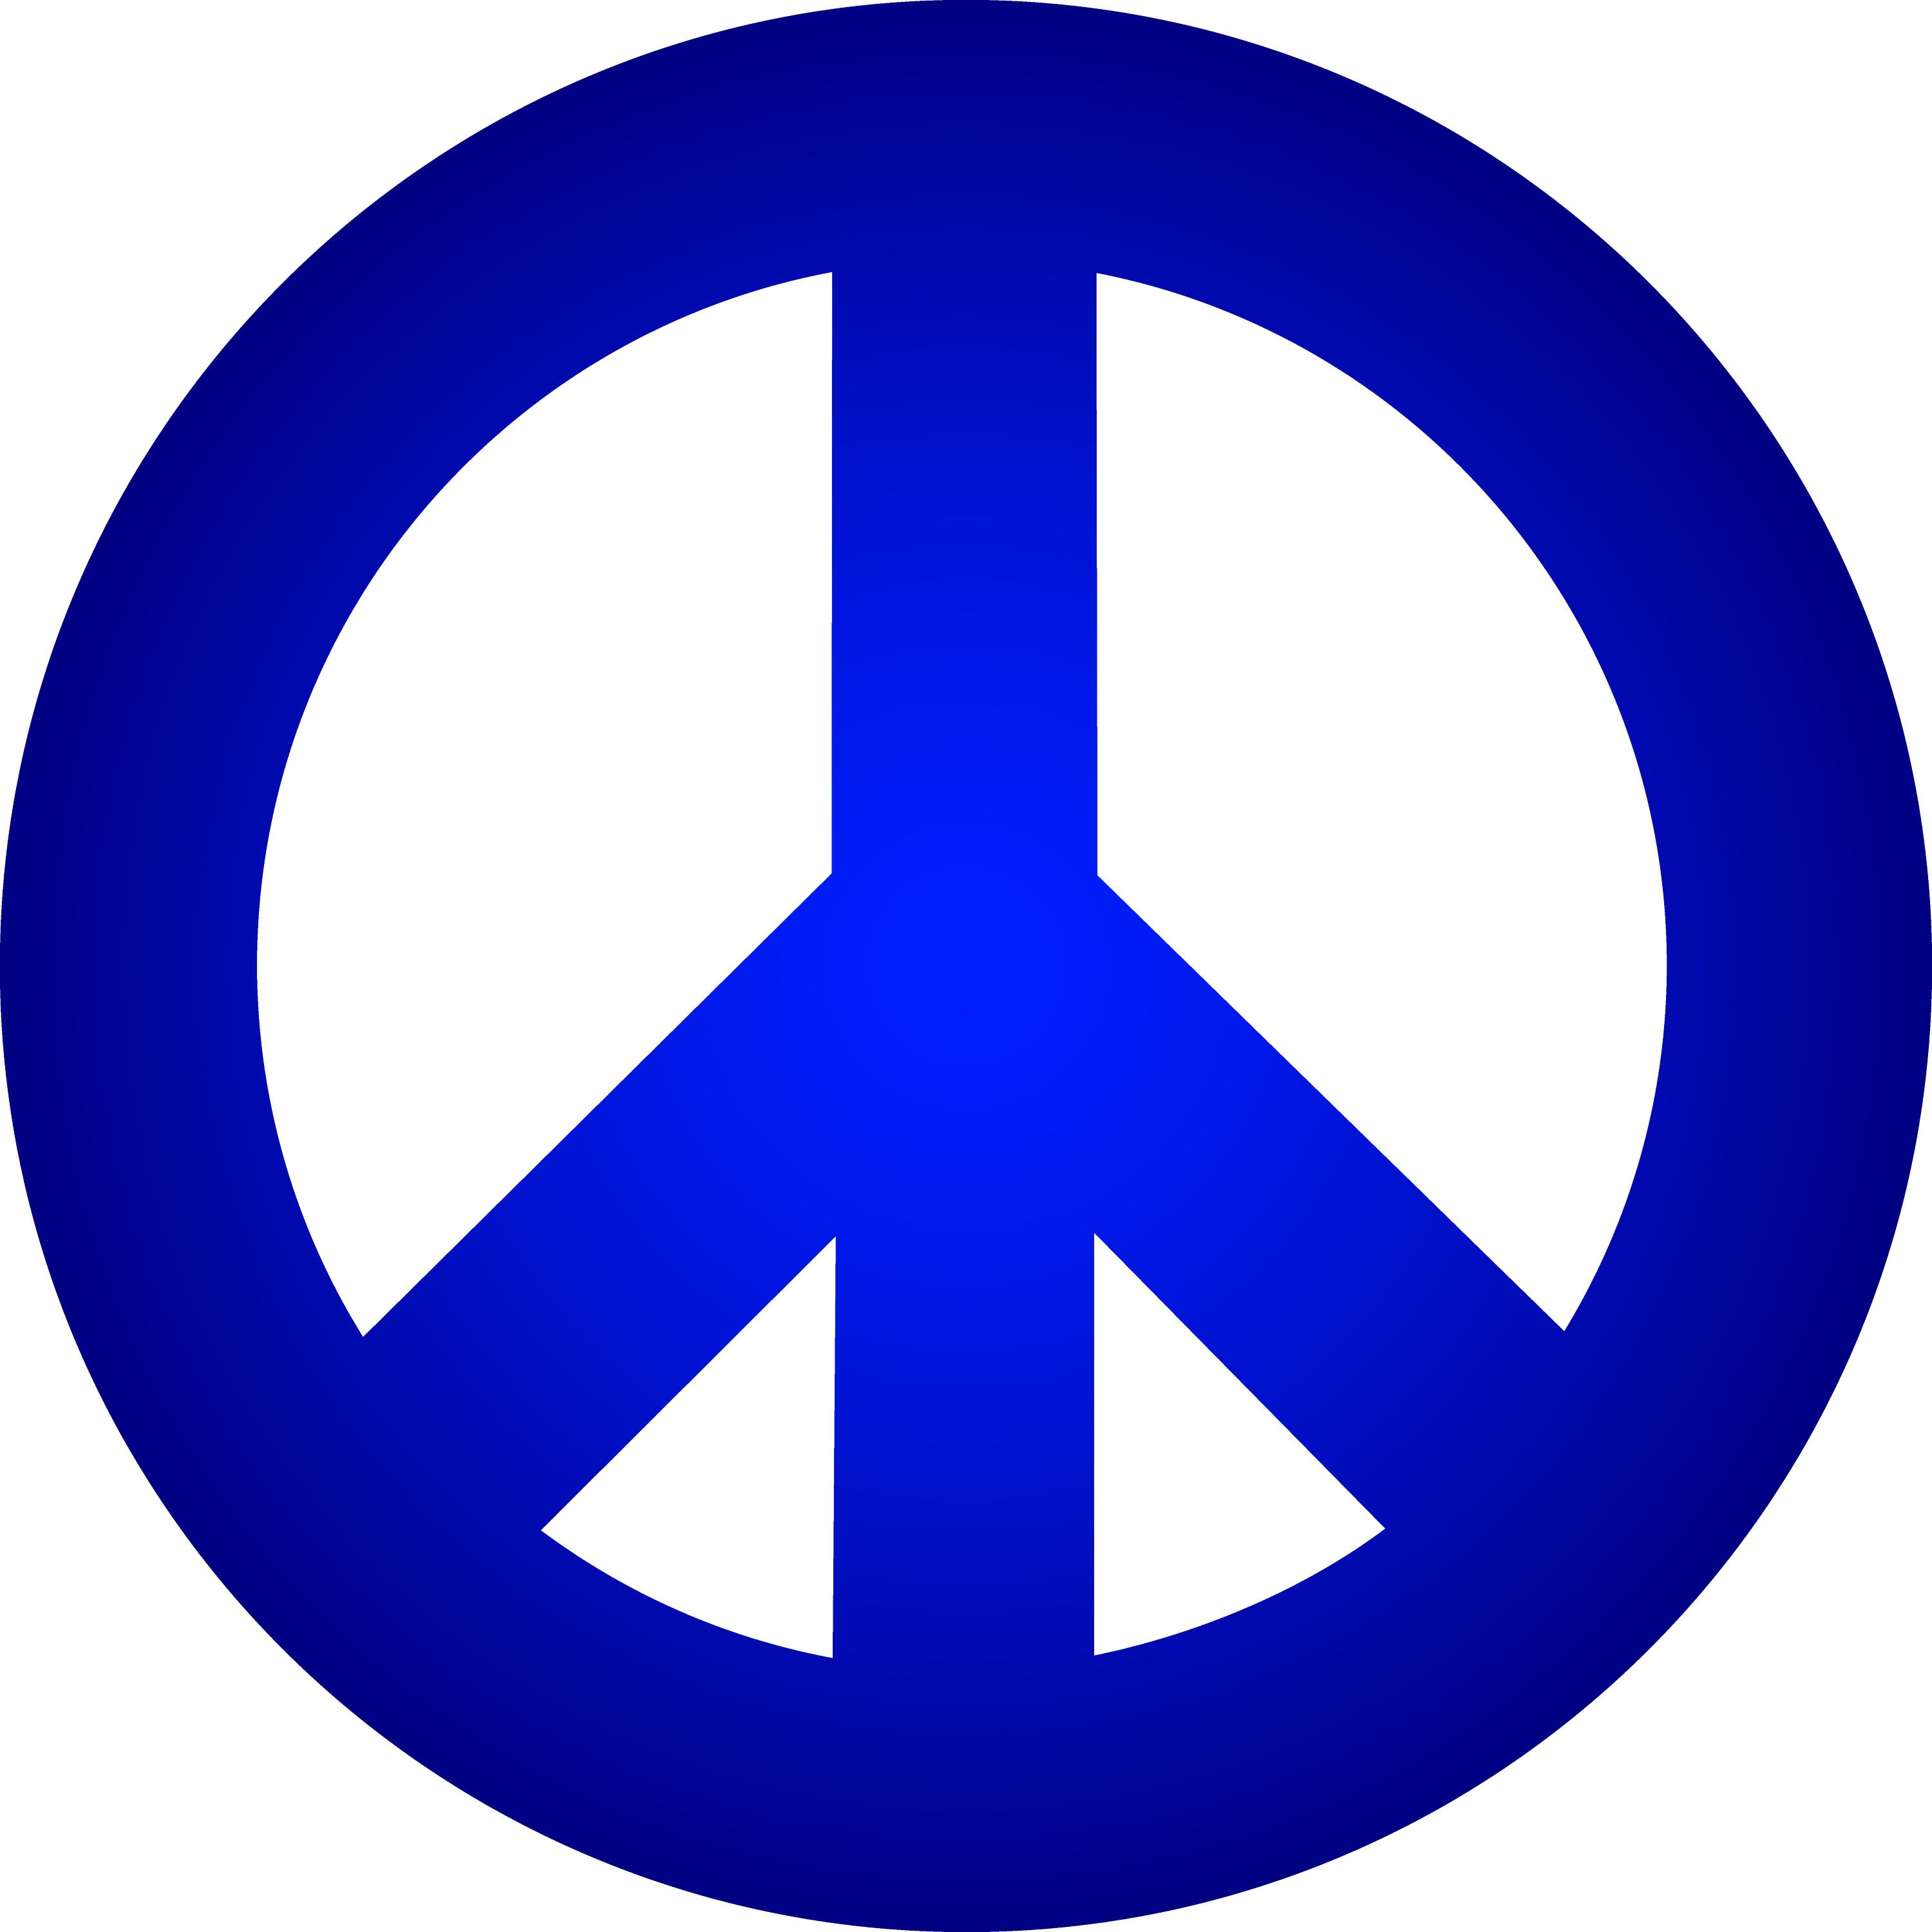 blue peace sign free